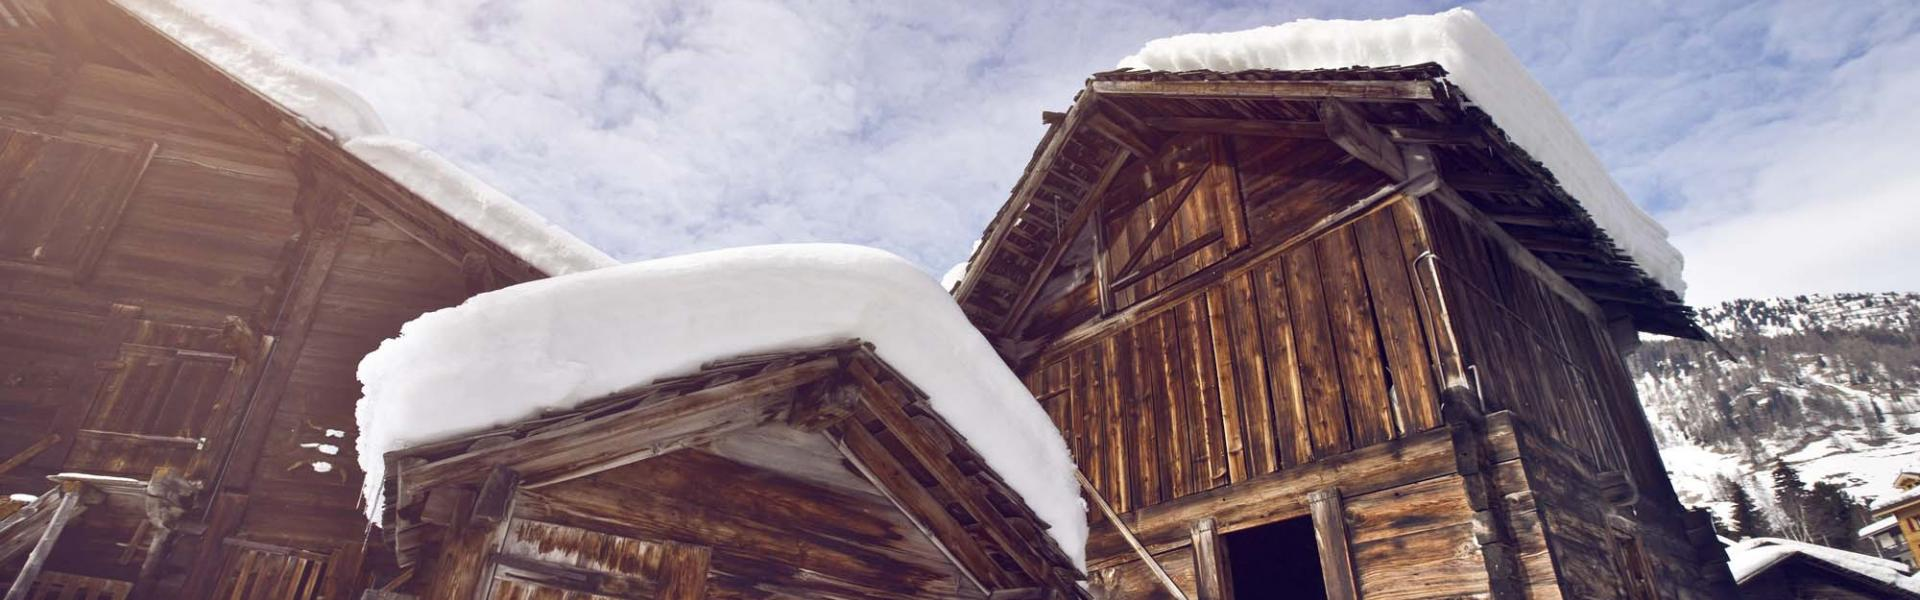 Typical swiss village in winter, Reckingen, Valais